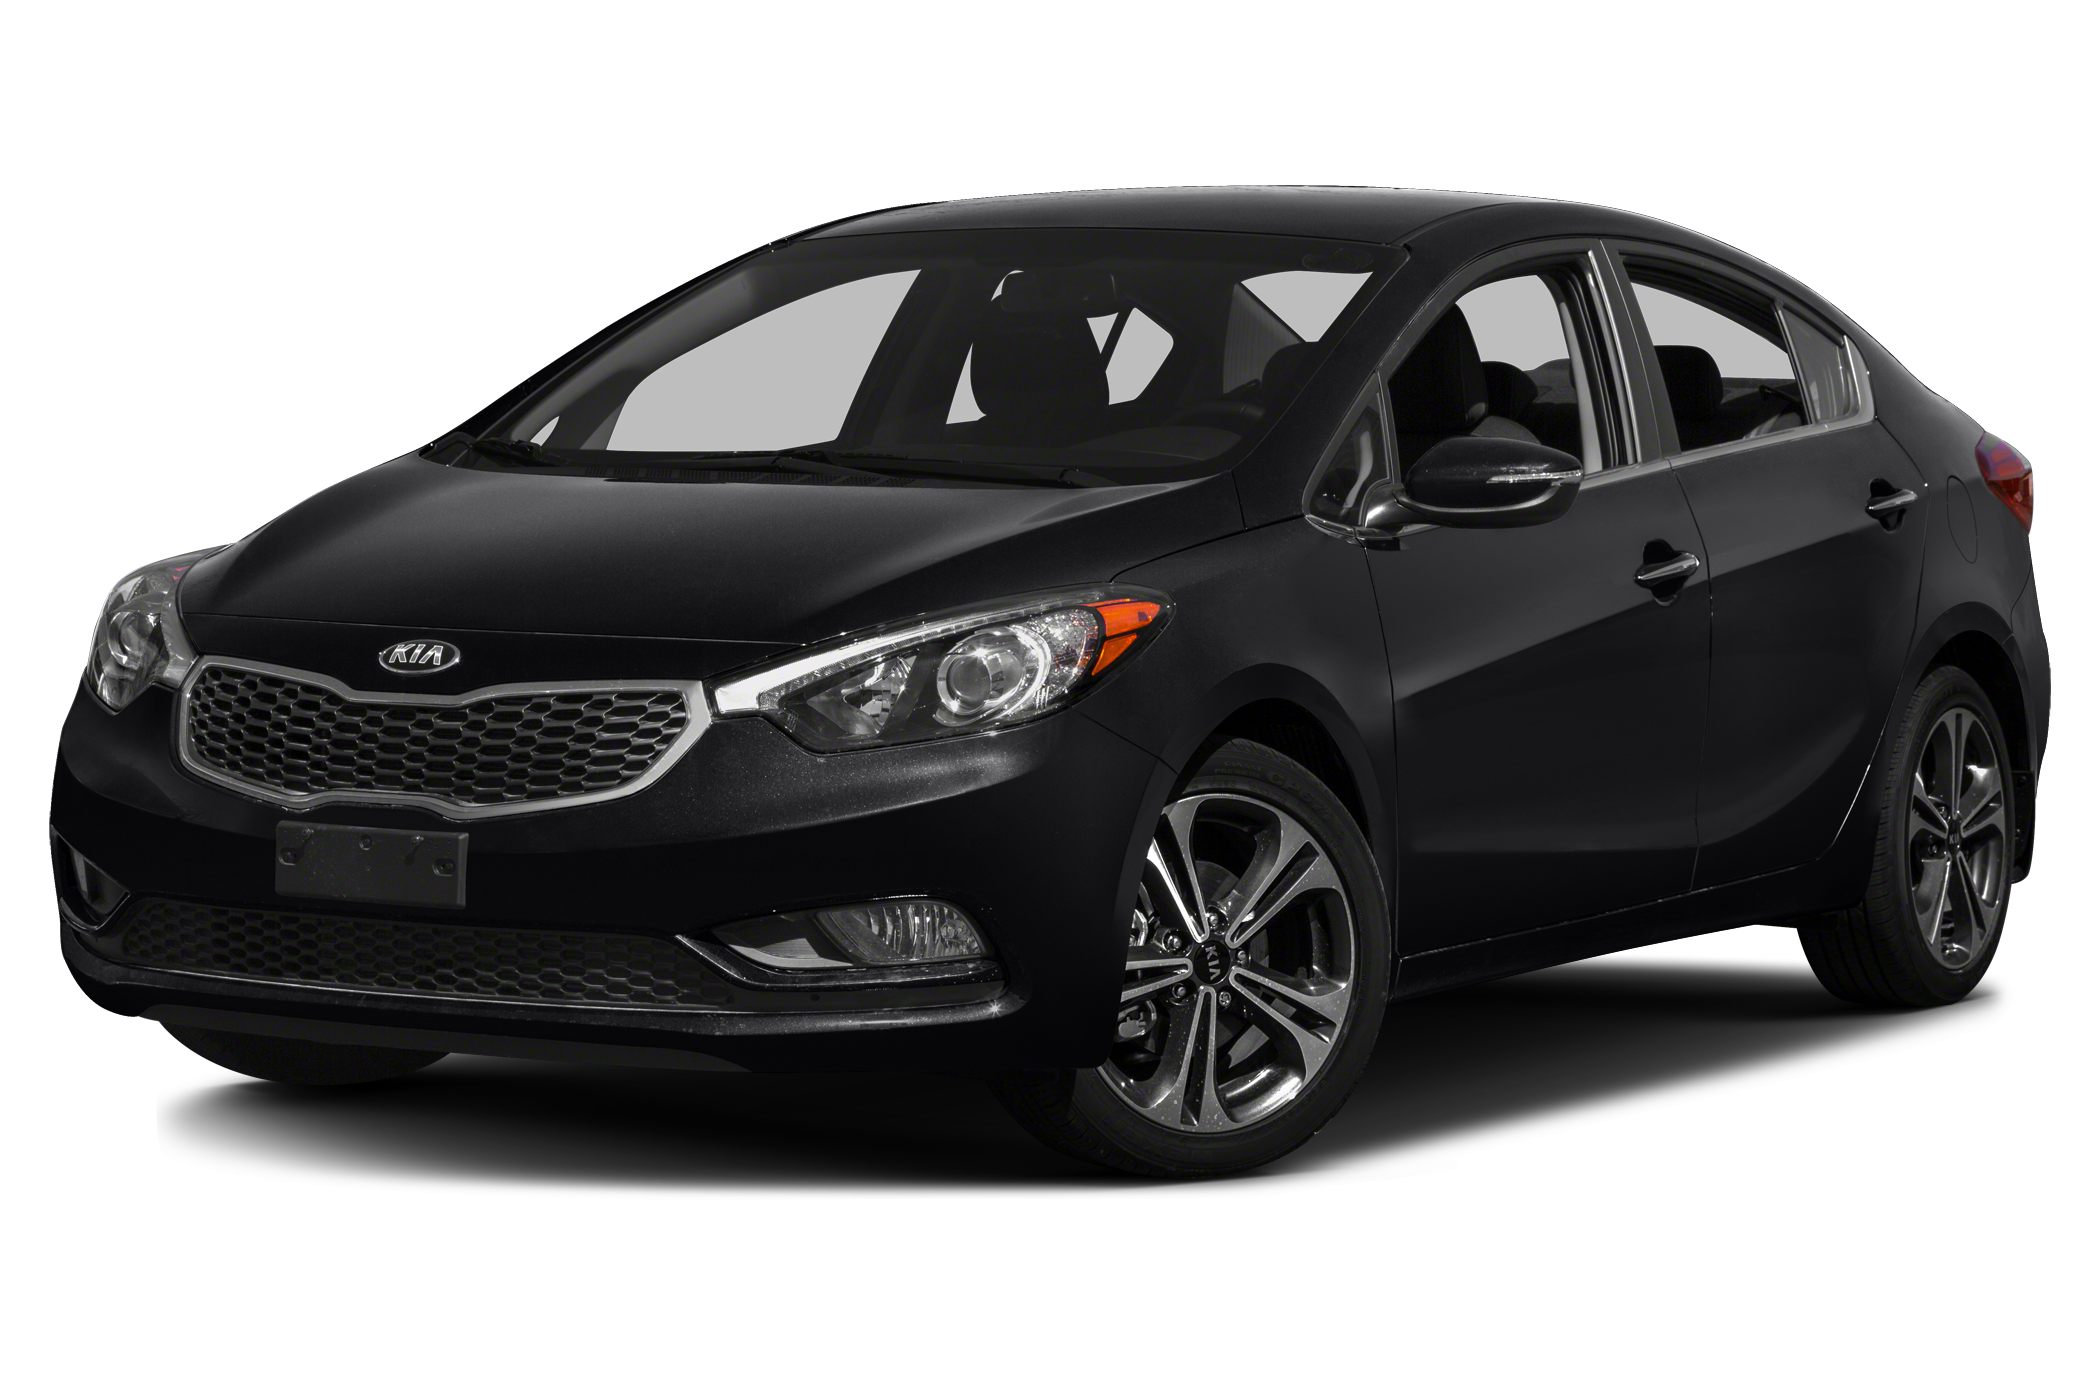 2015 Kia Forte LX Discerning drivers will appreciate the 2015 Kia Forte Demonstrating exceptional